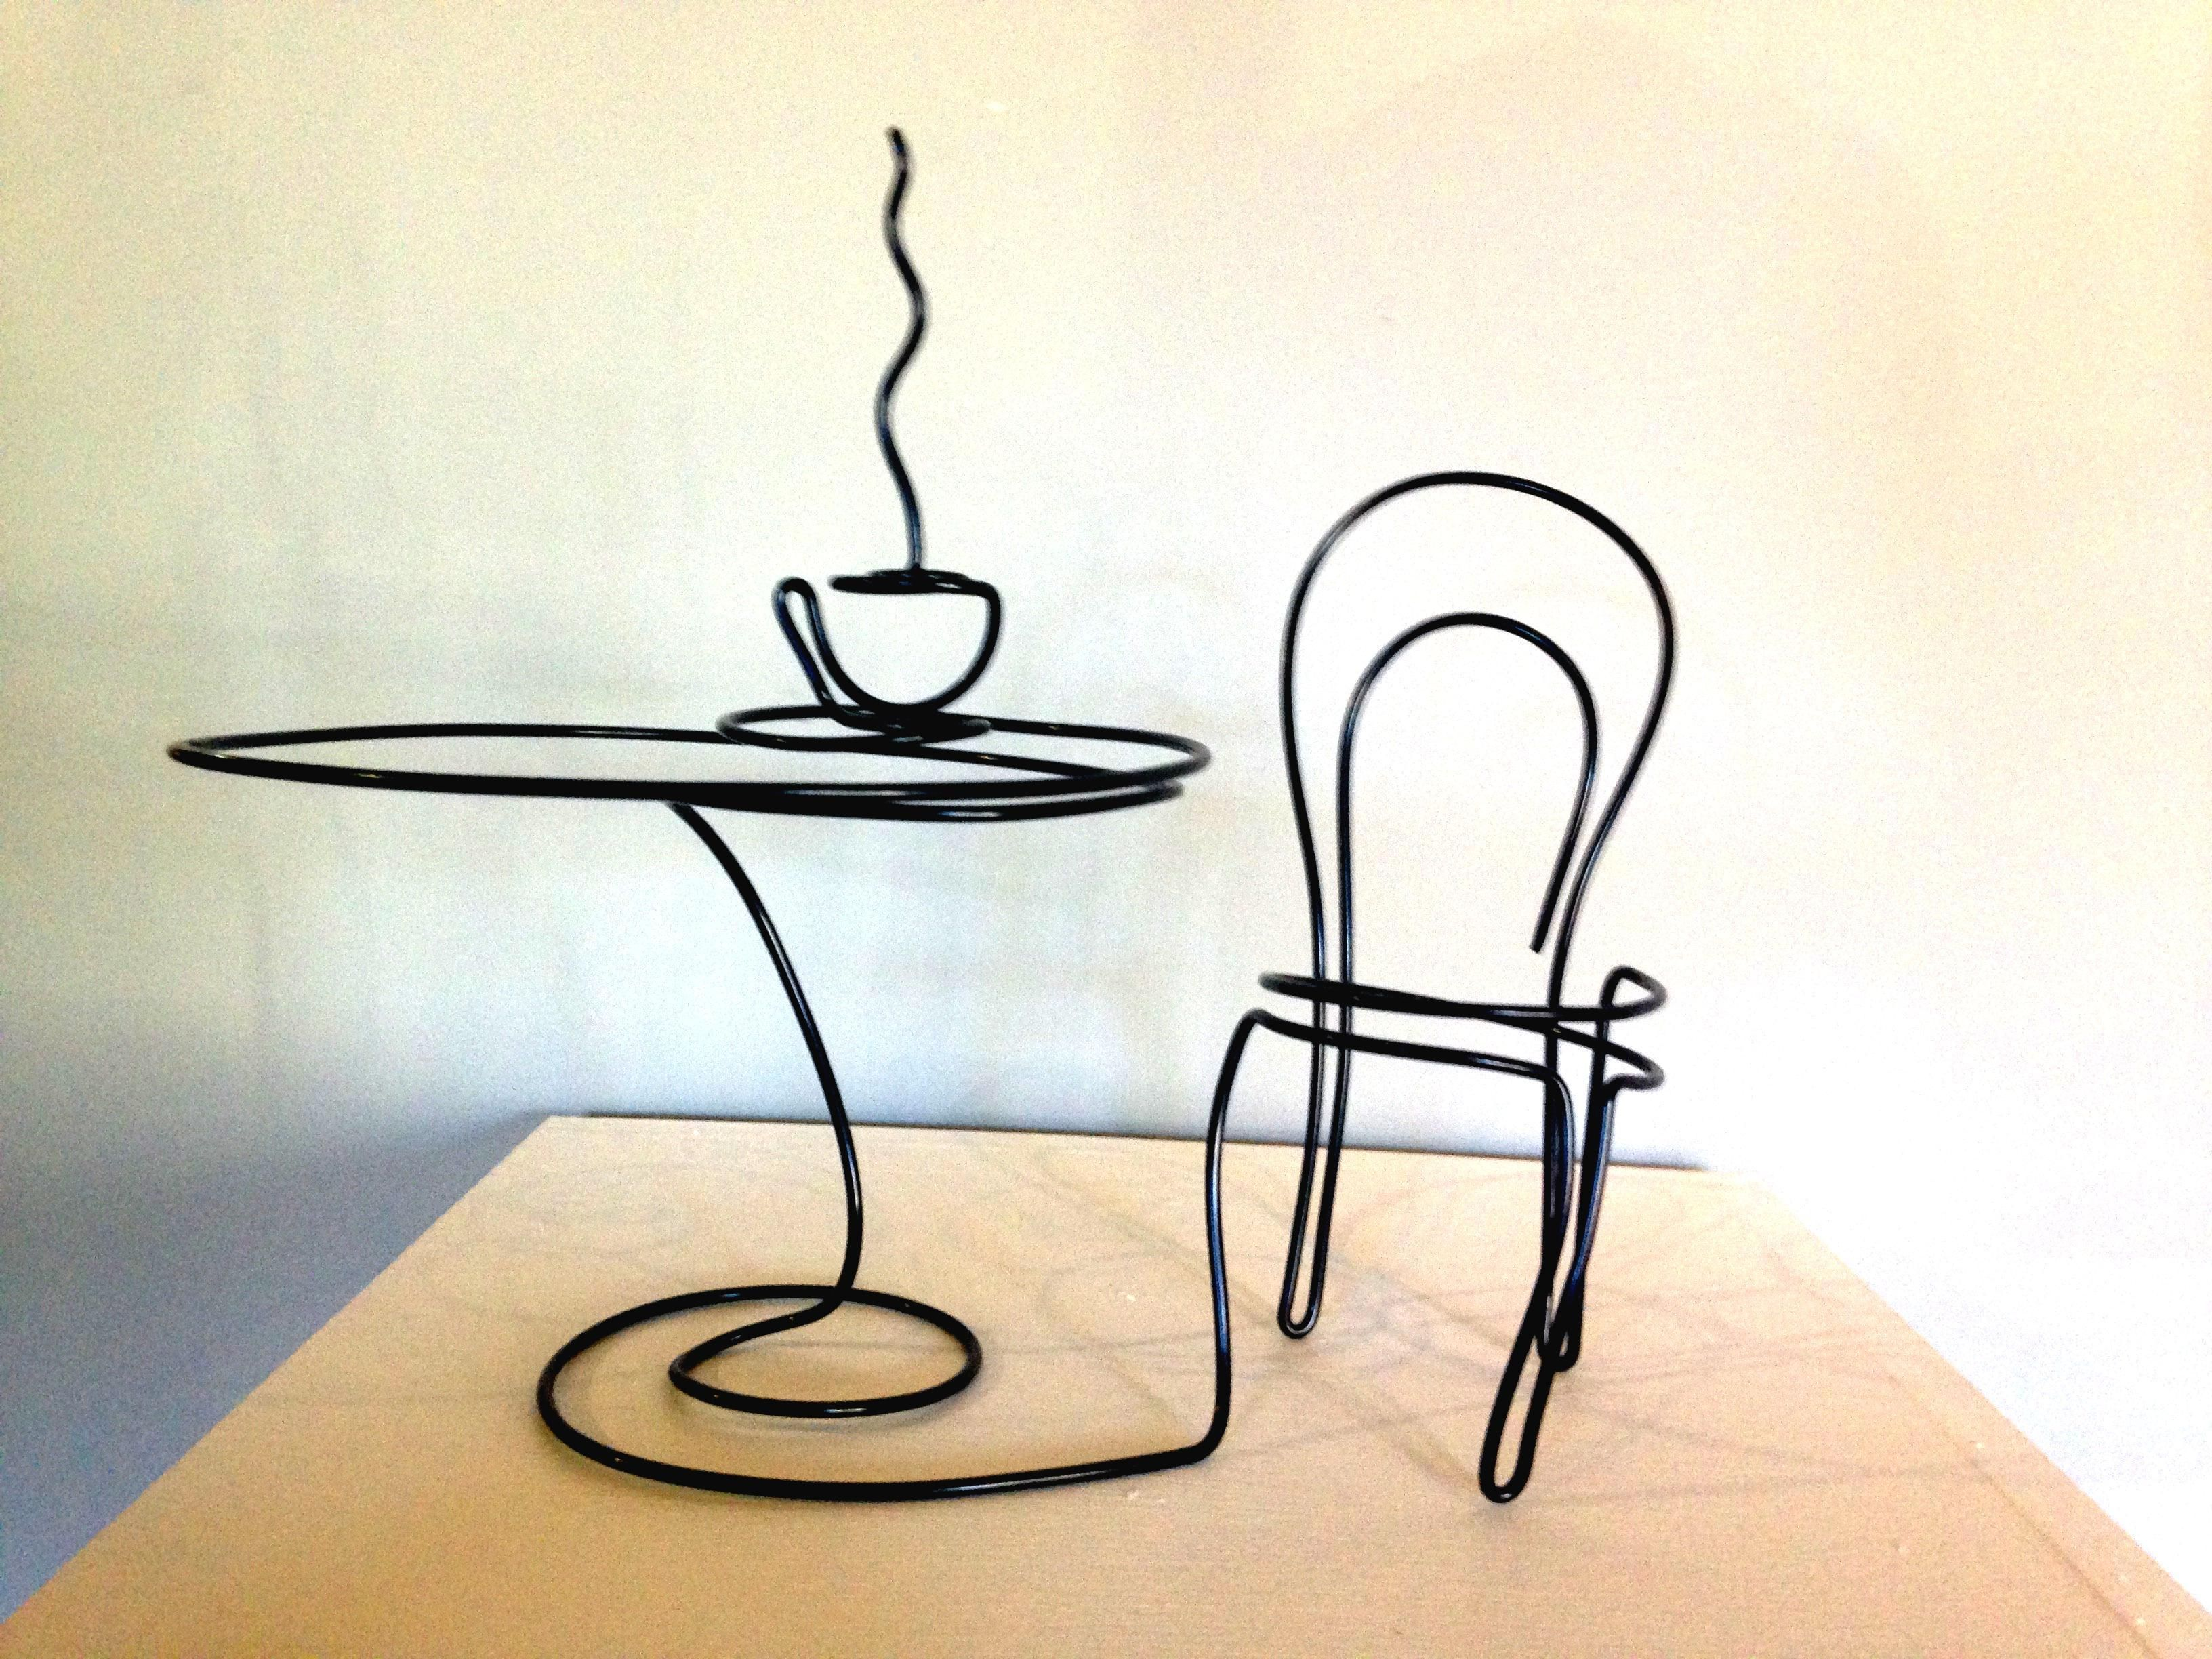 Café dreaming - wire art by Steve Lohman More | Drahtbilder ...